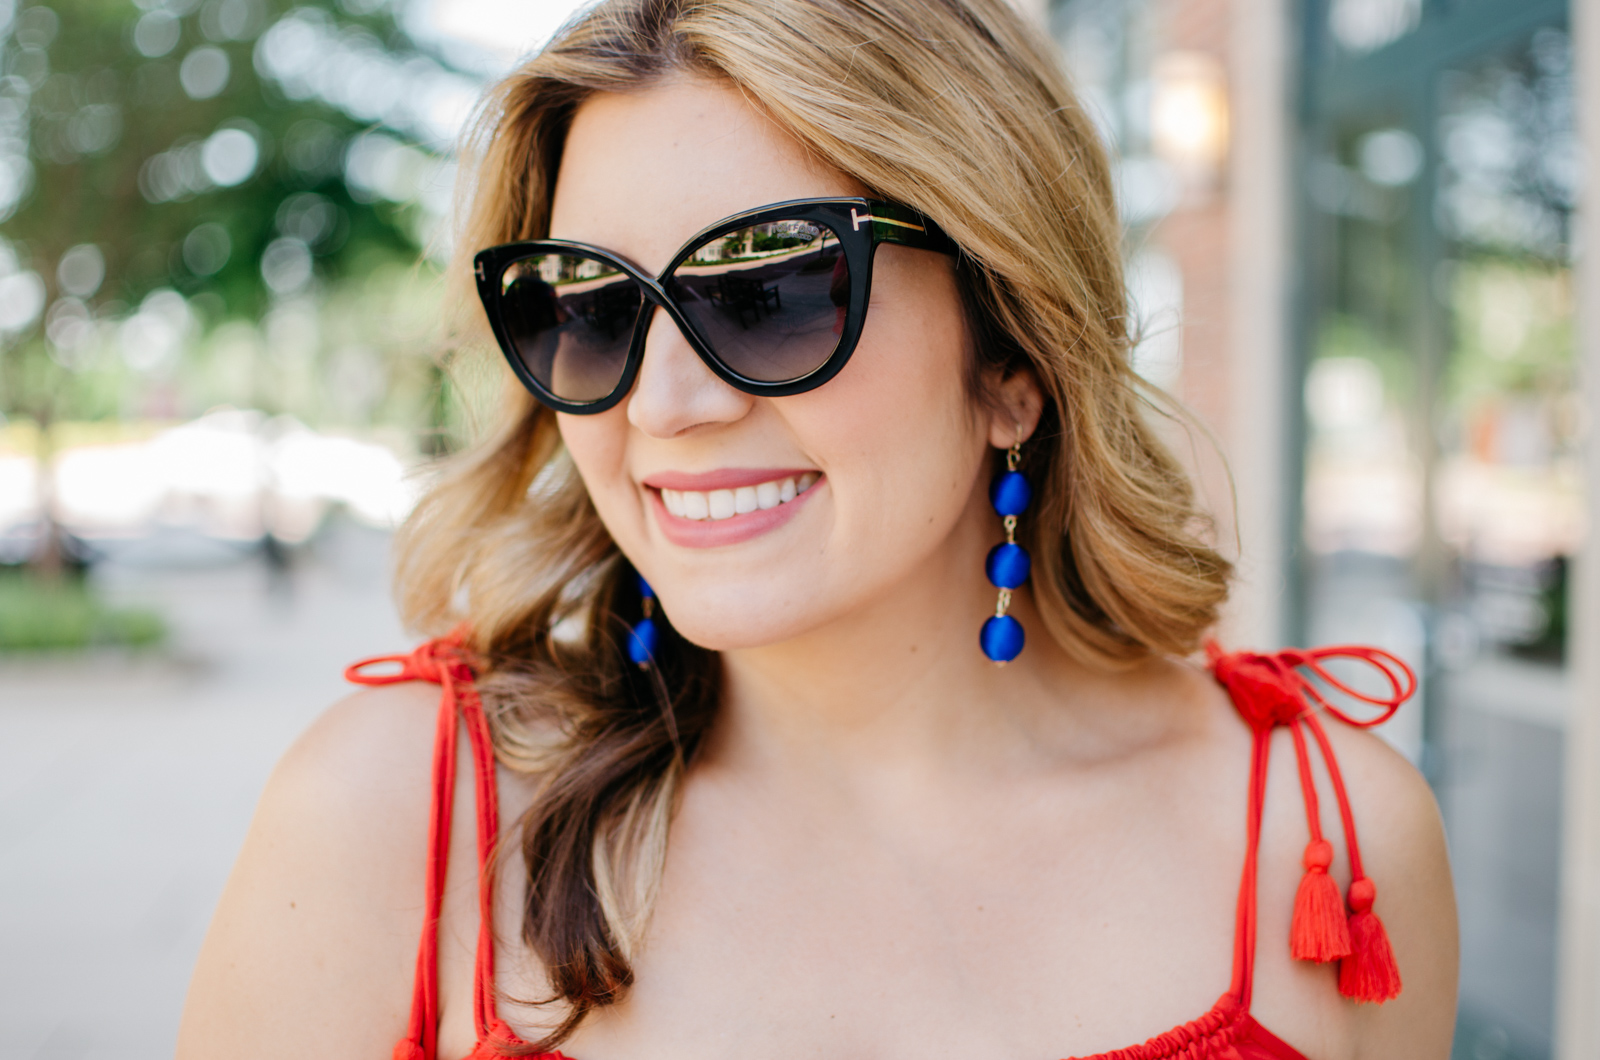 red, white, and blue summer - tassel tank + ball drop earrings | For more cute summer outfit ideas, head to bylaurenm.com!